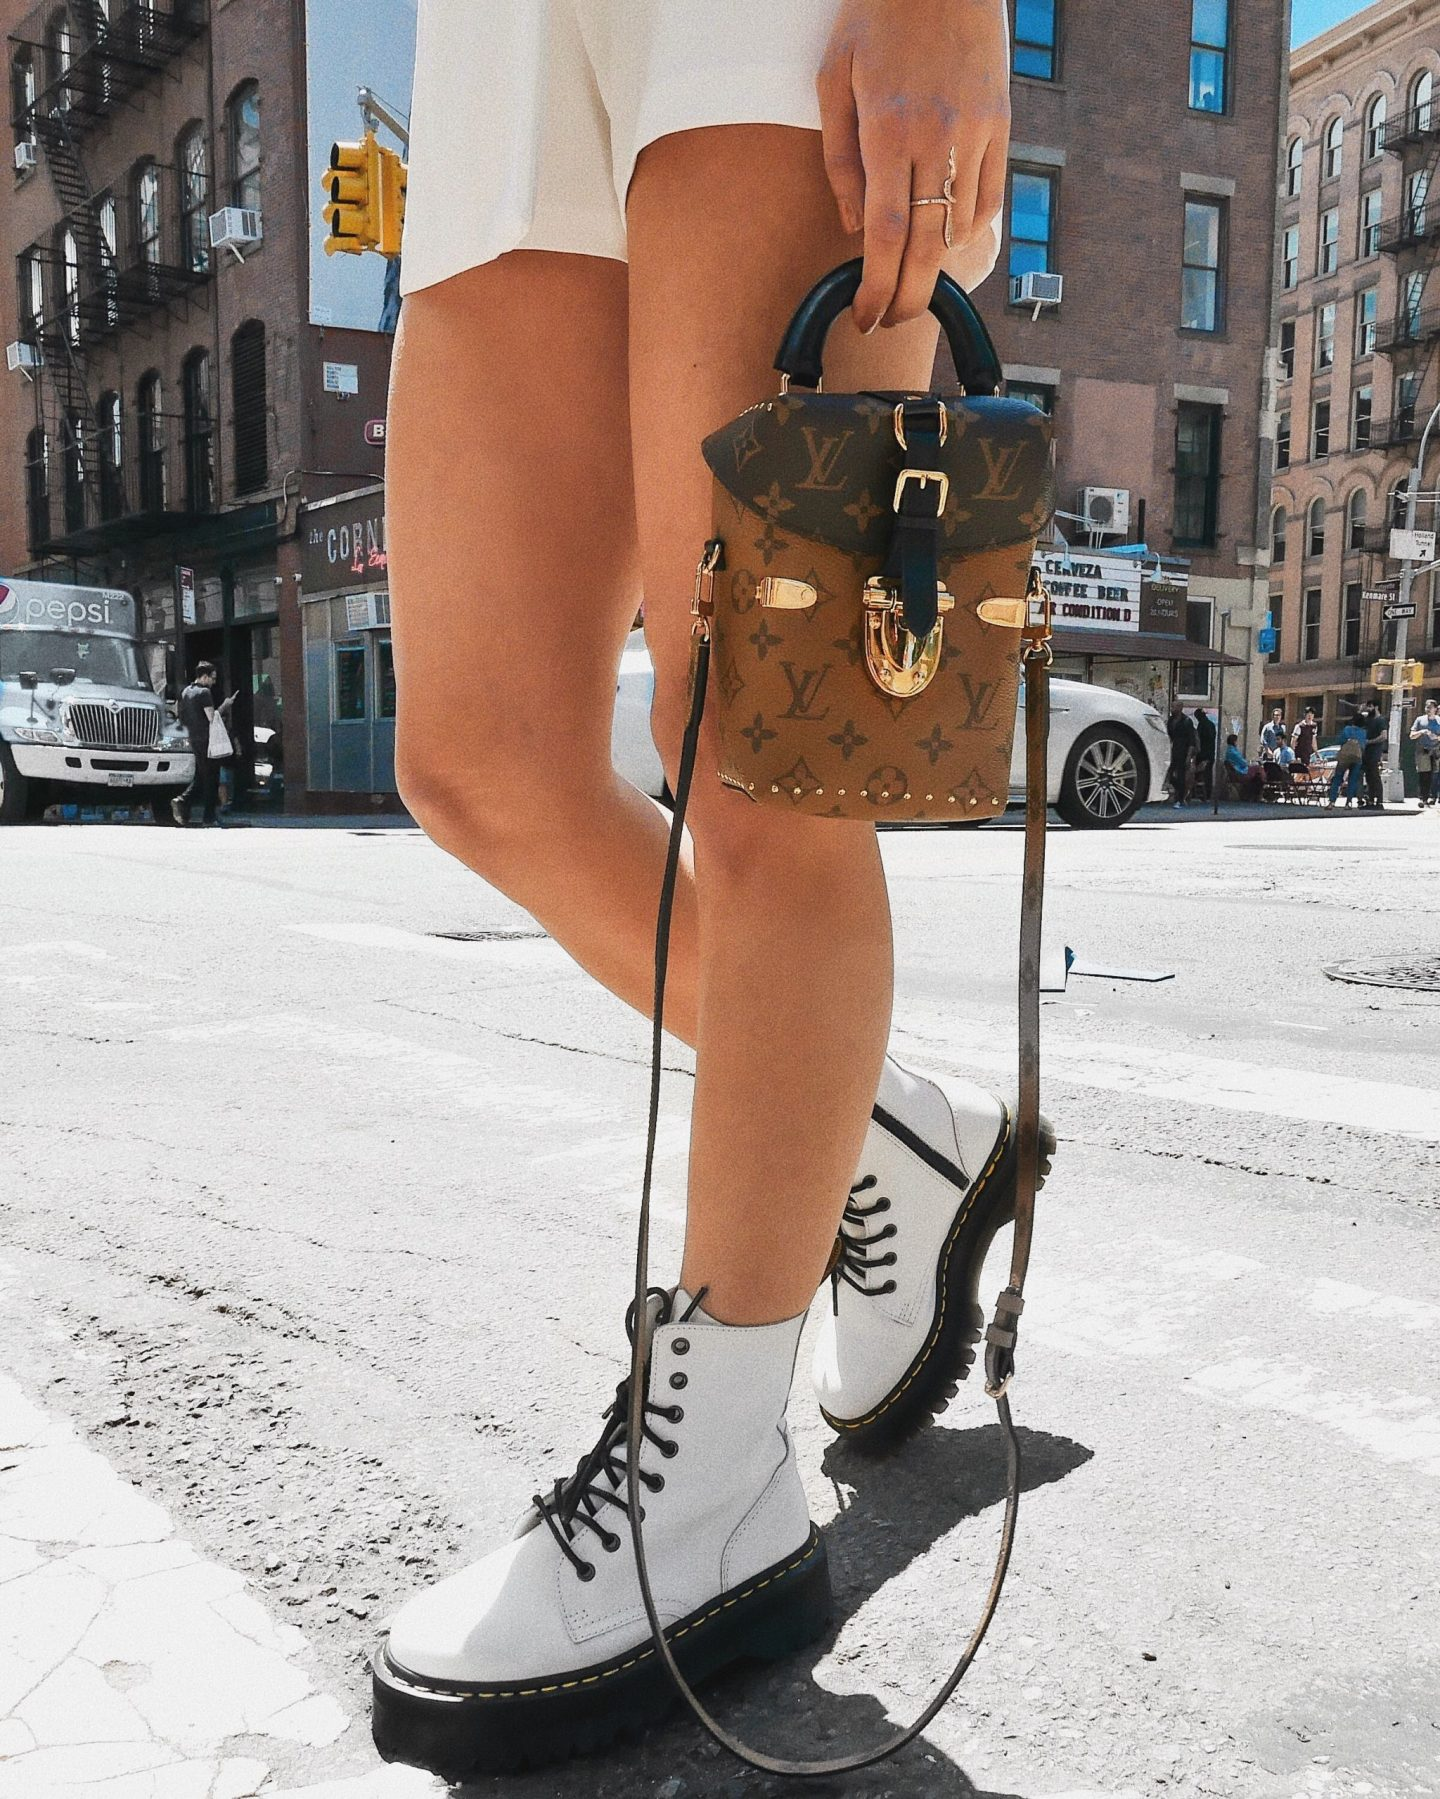 Cassandra DiMicco, Cass DiMicco, Dressed For Dreams, NYC, New York City, New York, Street Style NYC, Street Style 2018, NYC Street Style Street Style Outfits, 2018 Trends, NYC Fashion Blogger, NYC to do list, NYC to do, NYC bucket list, NYC Instagram Spots, SoHo, Dr. Martens Boots, Platform Dr. Martens, Doc Martens, White Platform Boots, White Dr. Martens, White Platform Dr. Martens, Louis Vuitton Reverse Monochrome Camera Box Bag, Louis Vuitton Camera Box Bag, Louis Vuitton Bag, River island, River island romper, White Tux romper, white romper